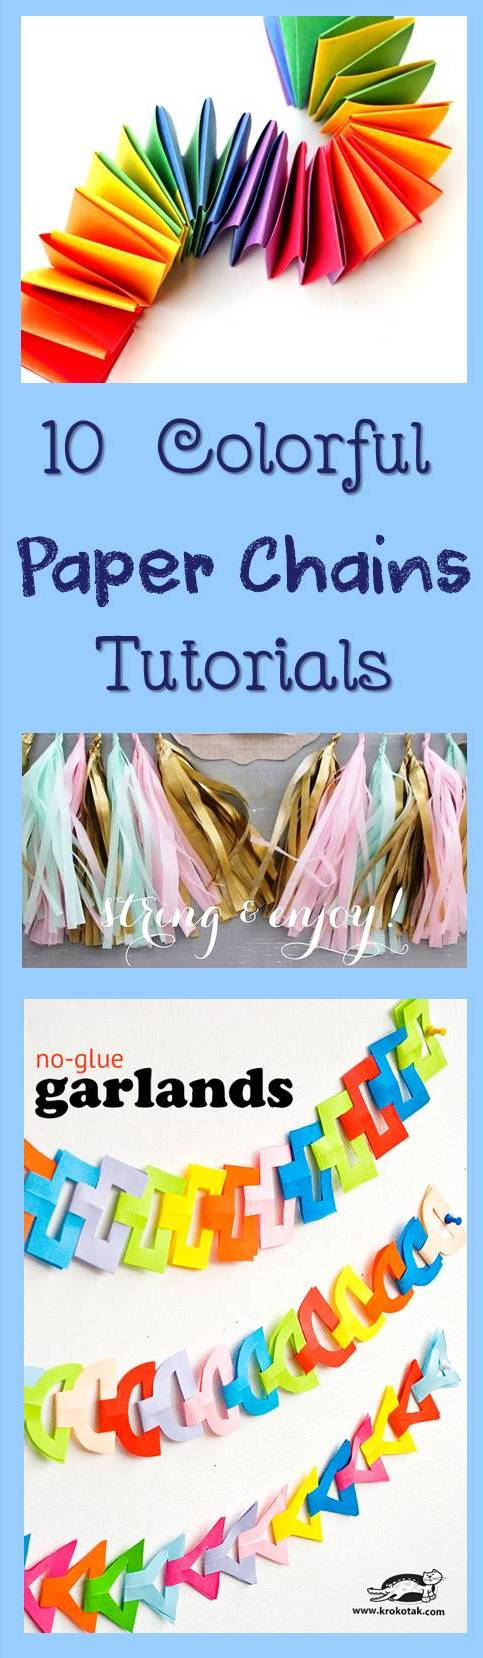 How to make DIY Garlands - 10 simple tutorials